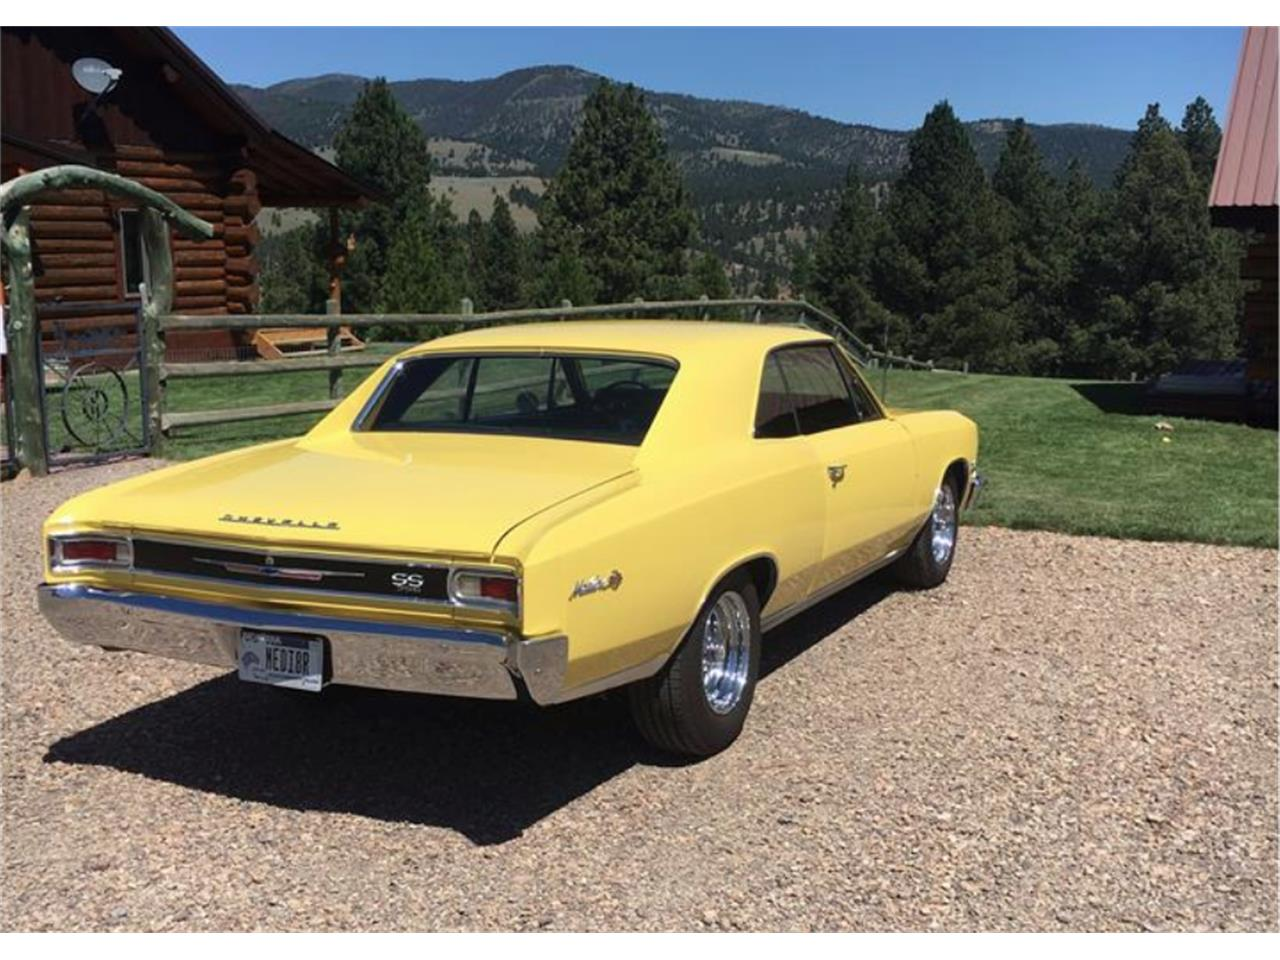 1966 Chevrolet Chevelle Malibu SS (CC-1241559) for sale in Helmville, Montana